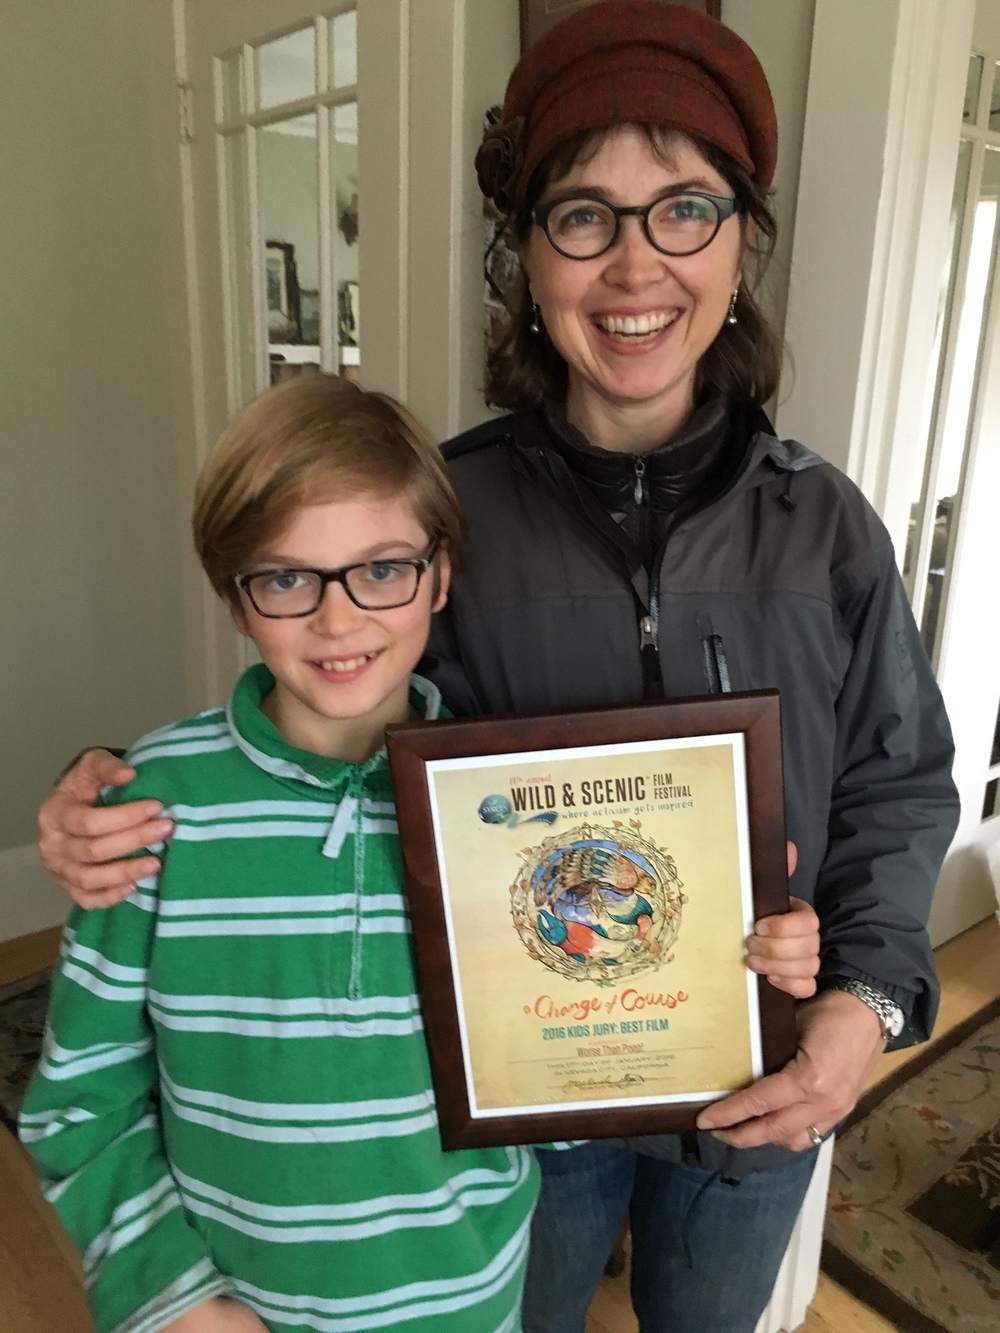 Holding our prize: Kids Jury Award for Best Film, 2016 Wild & Scenic Film Festival